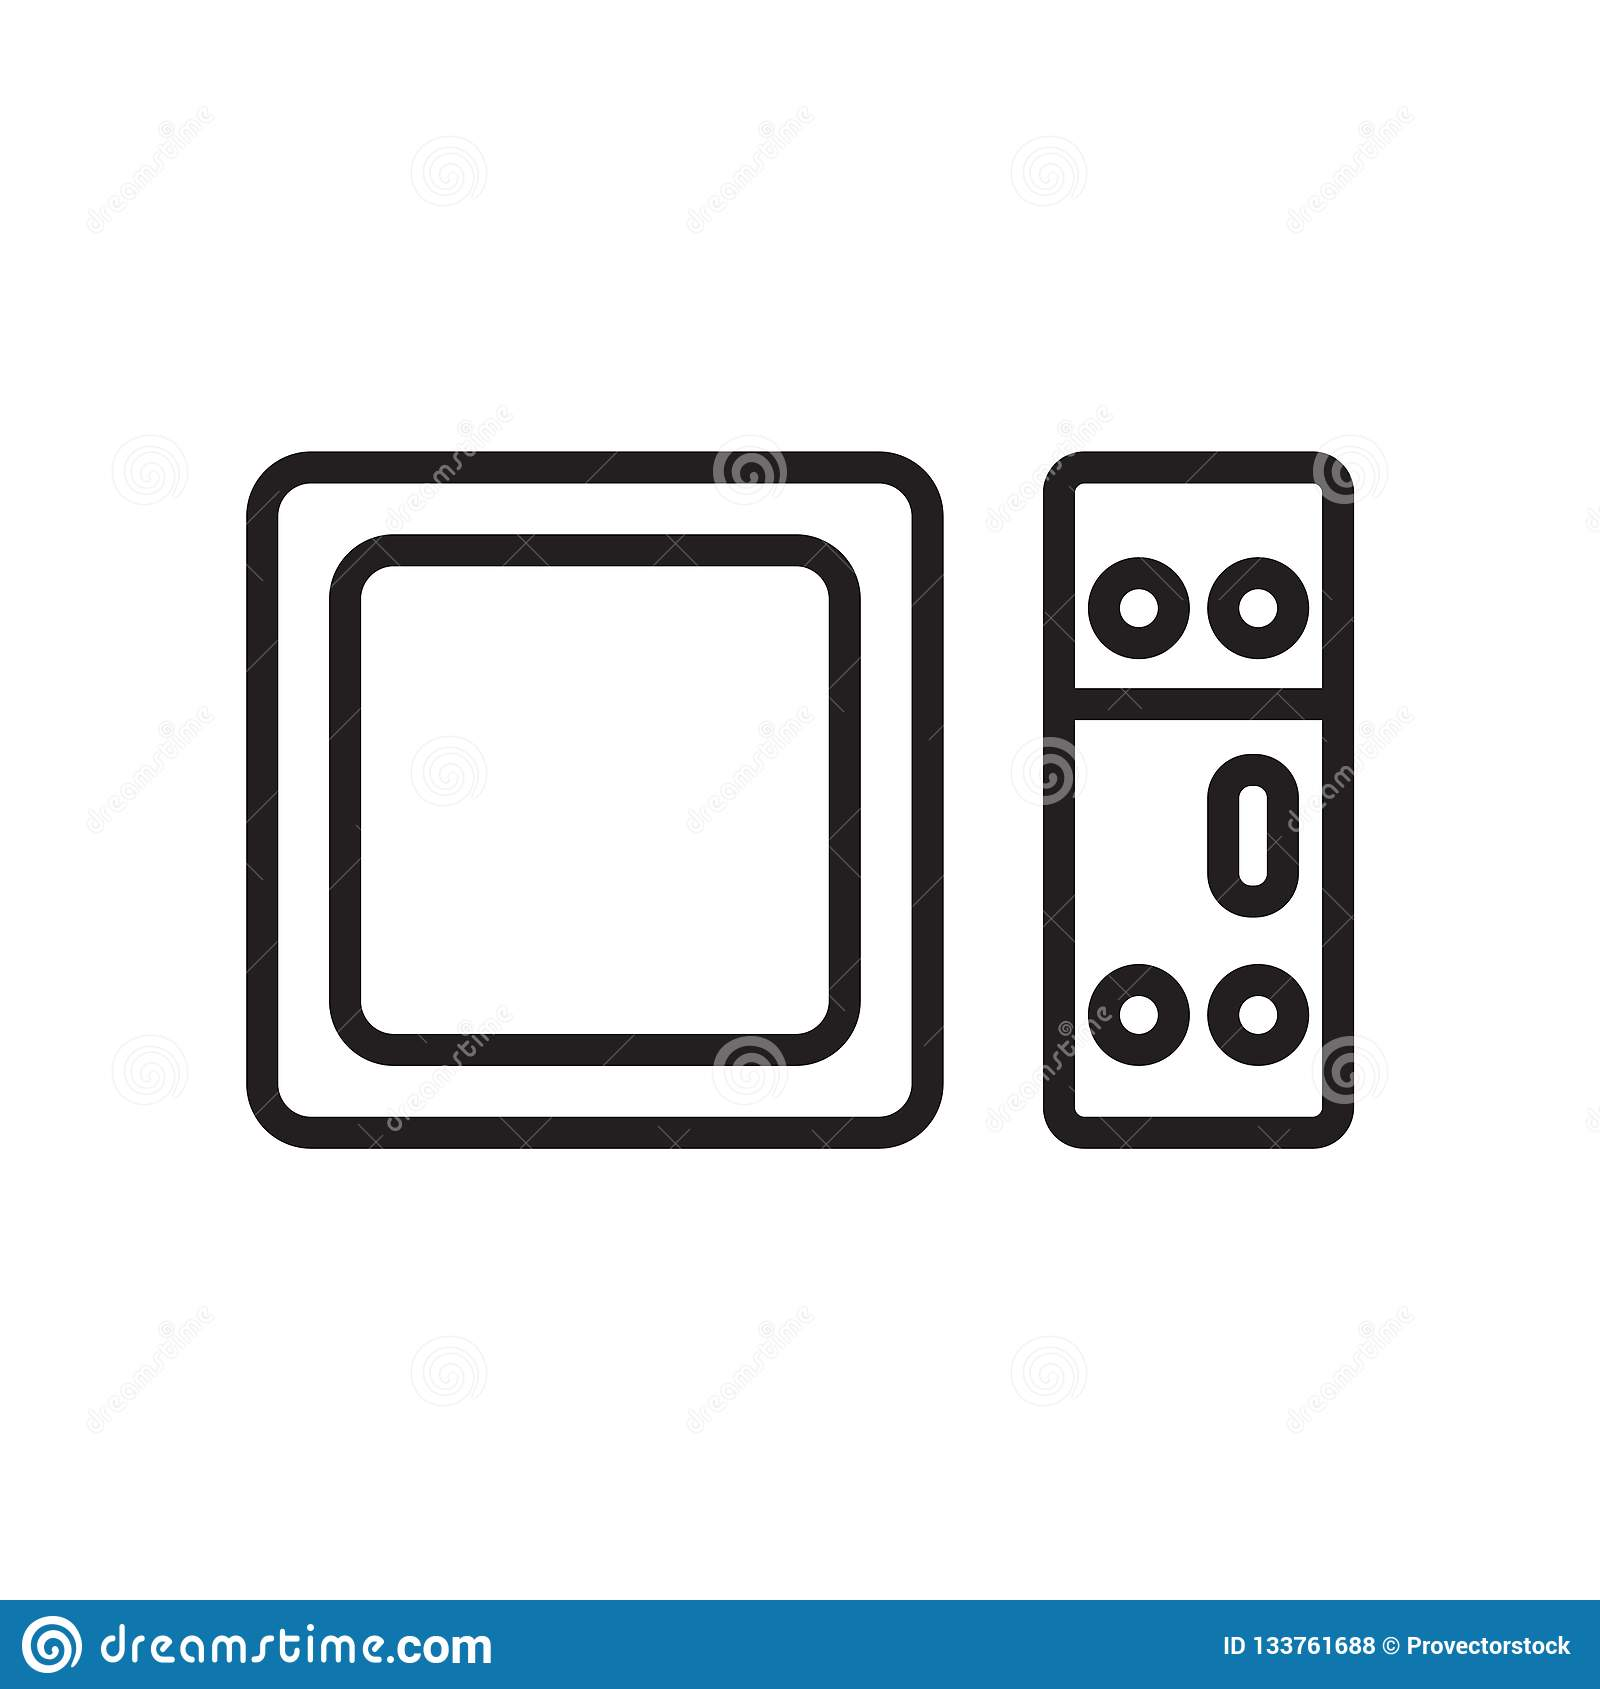 Apple tv icon vector sign and symbol isolated on white background, Apple tv logo concept